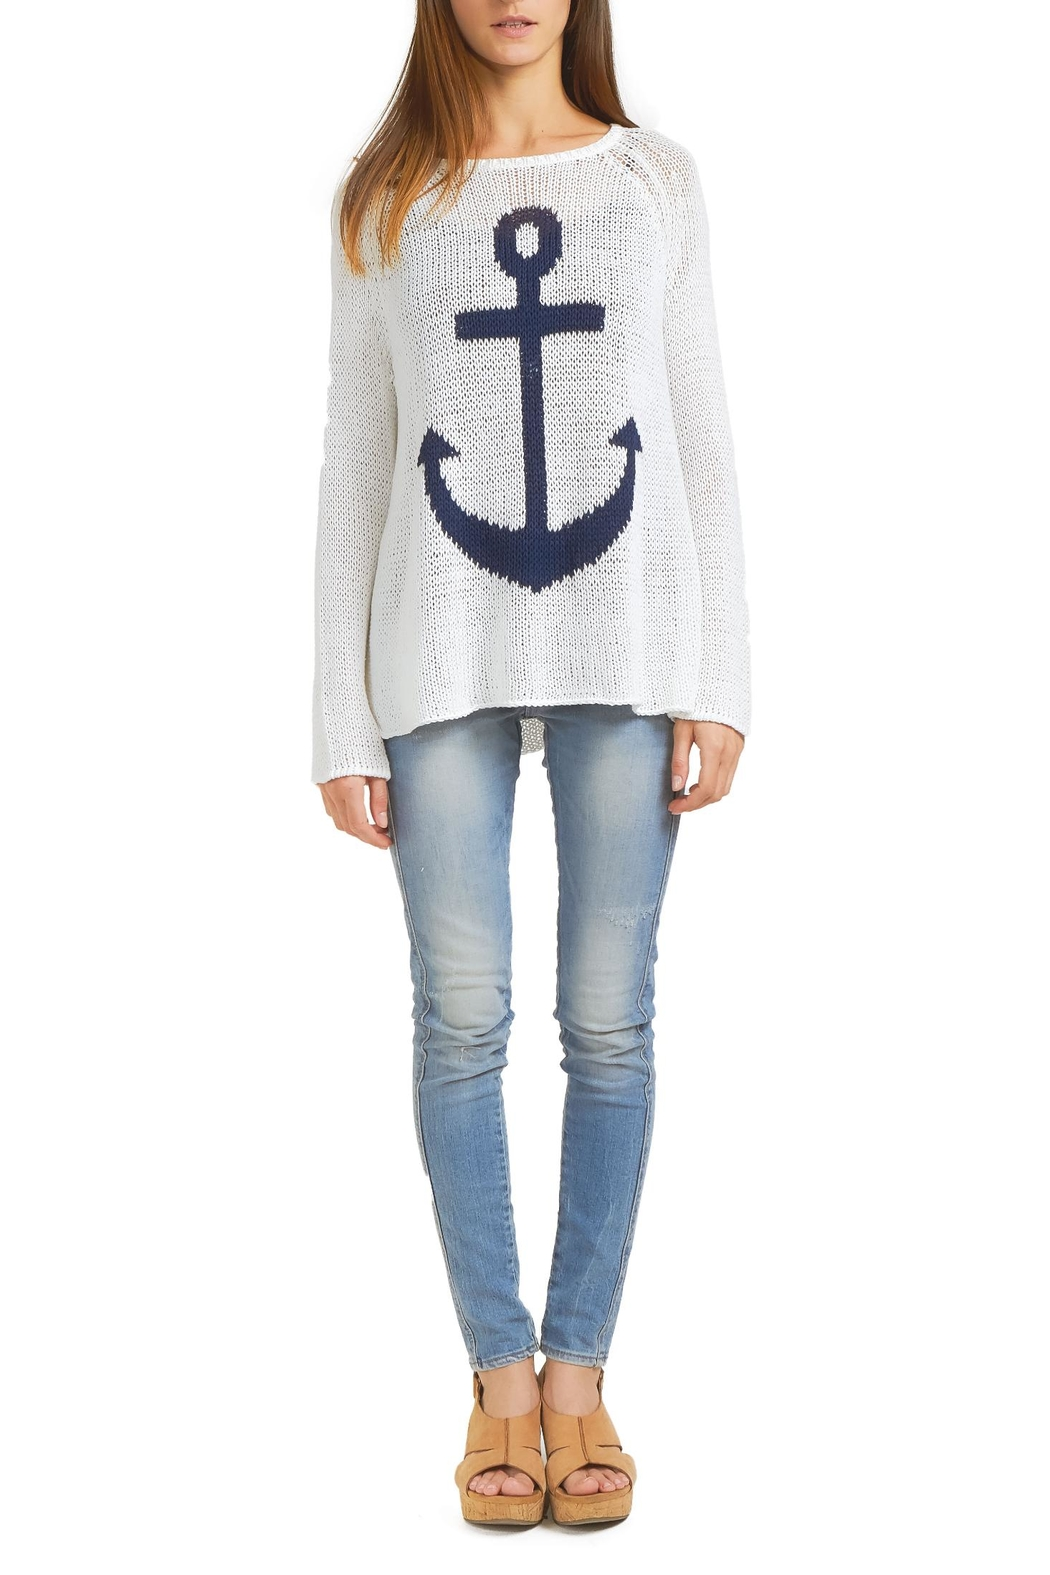 Wooden Ships Nautical Sweater Top - Main Image